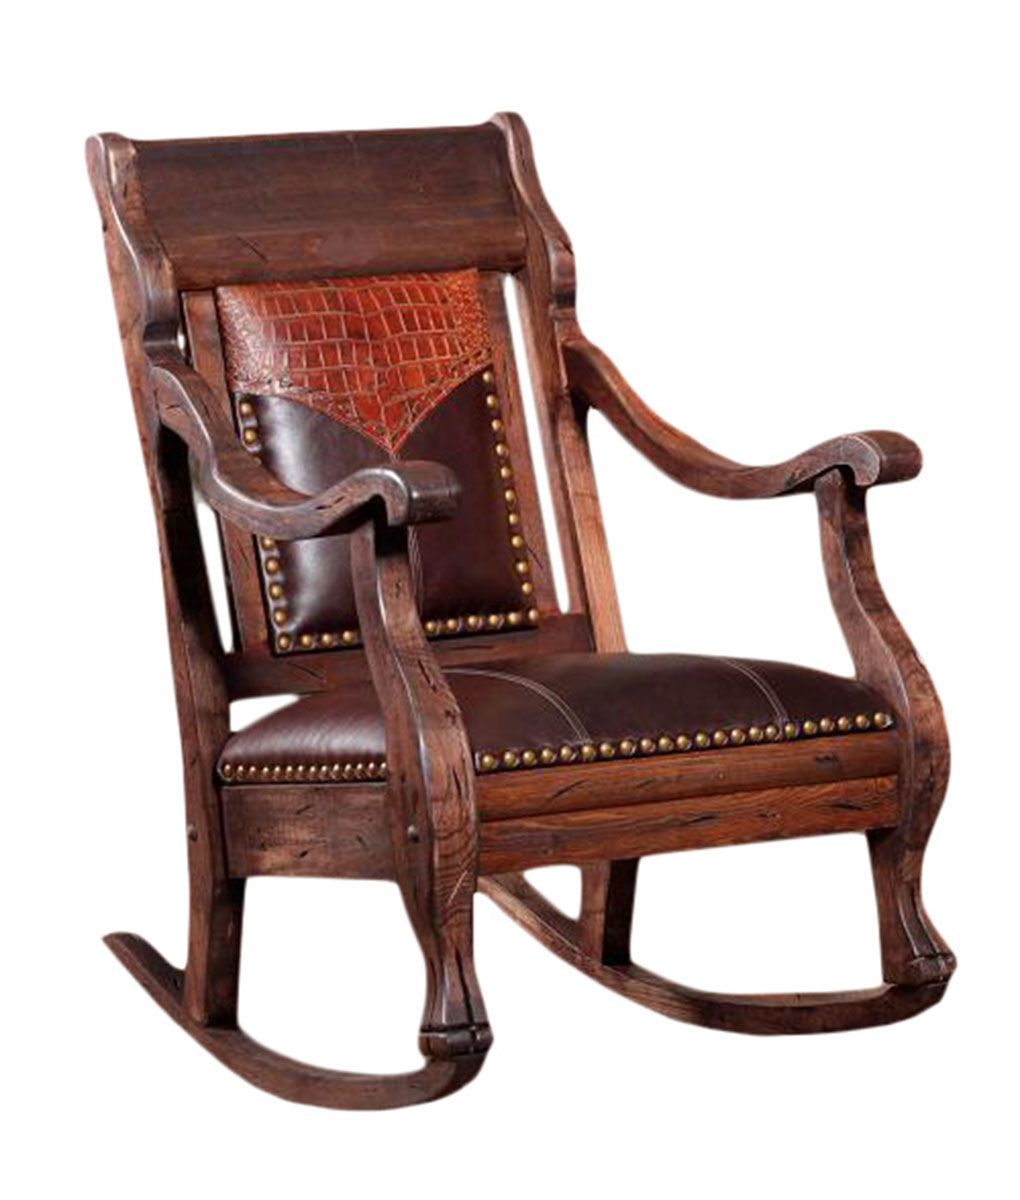 Mexican Rocking Chair Vintage Rocker Southwestern Rustic Spanish Mexican